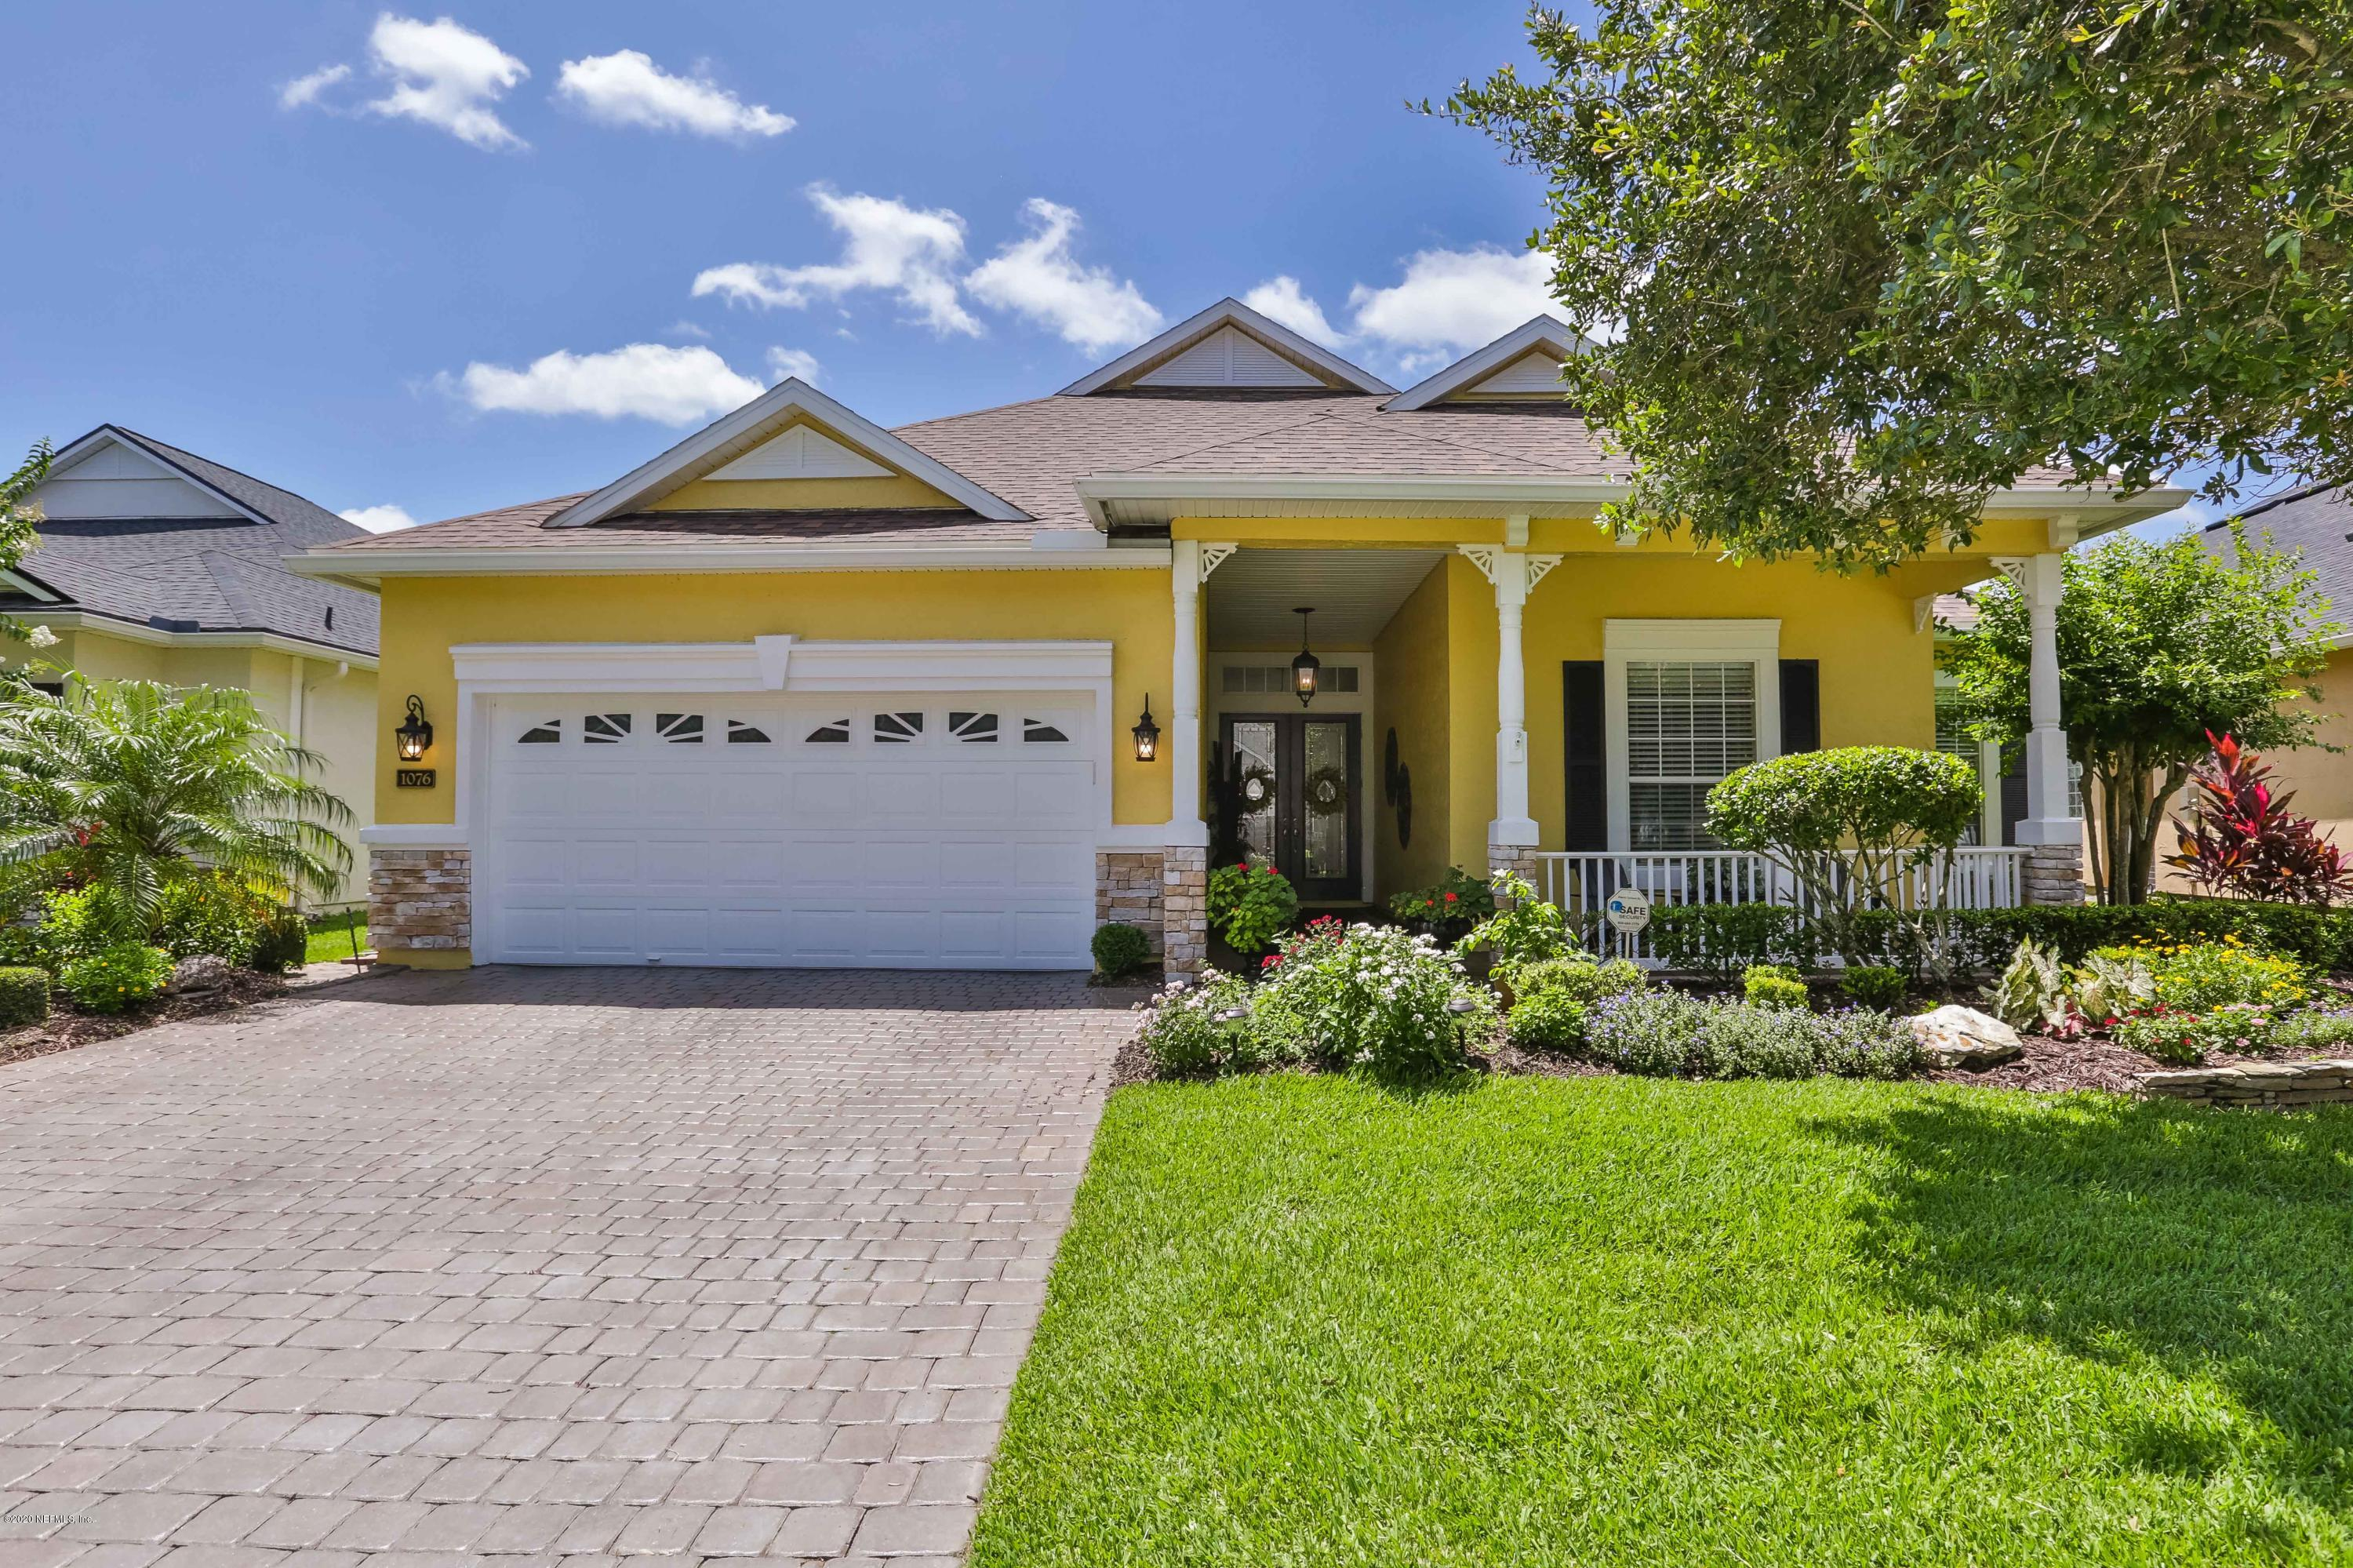 1076 INVERNESS, ST AUGUSTINE, FLORIDA 32092, 4 Bedrooms Bedrooms, ,3 BathroomsBathrooms,Residential,For sale,INVERNESS,1060708